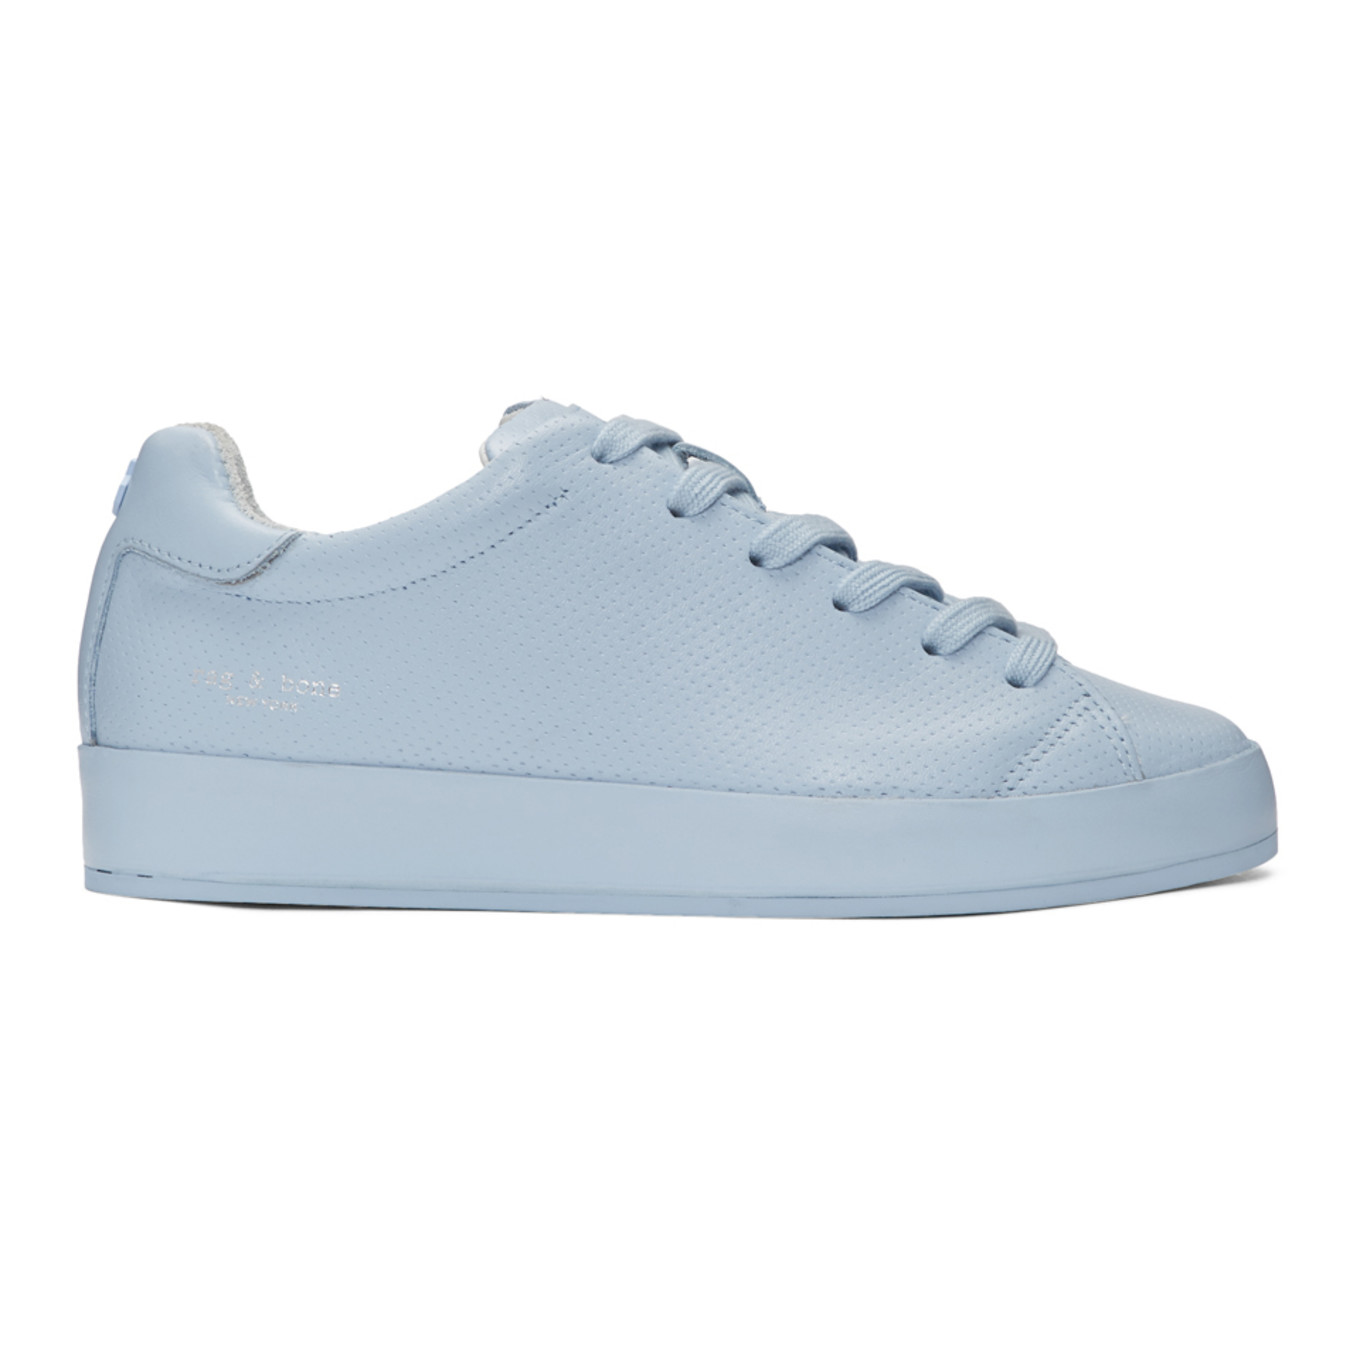 Blue Perforated Low Sneakers Rag & Bone With Mastercard o7qwV6y8